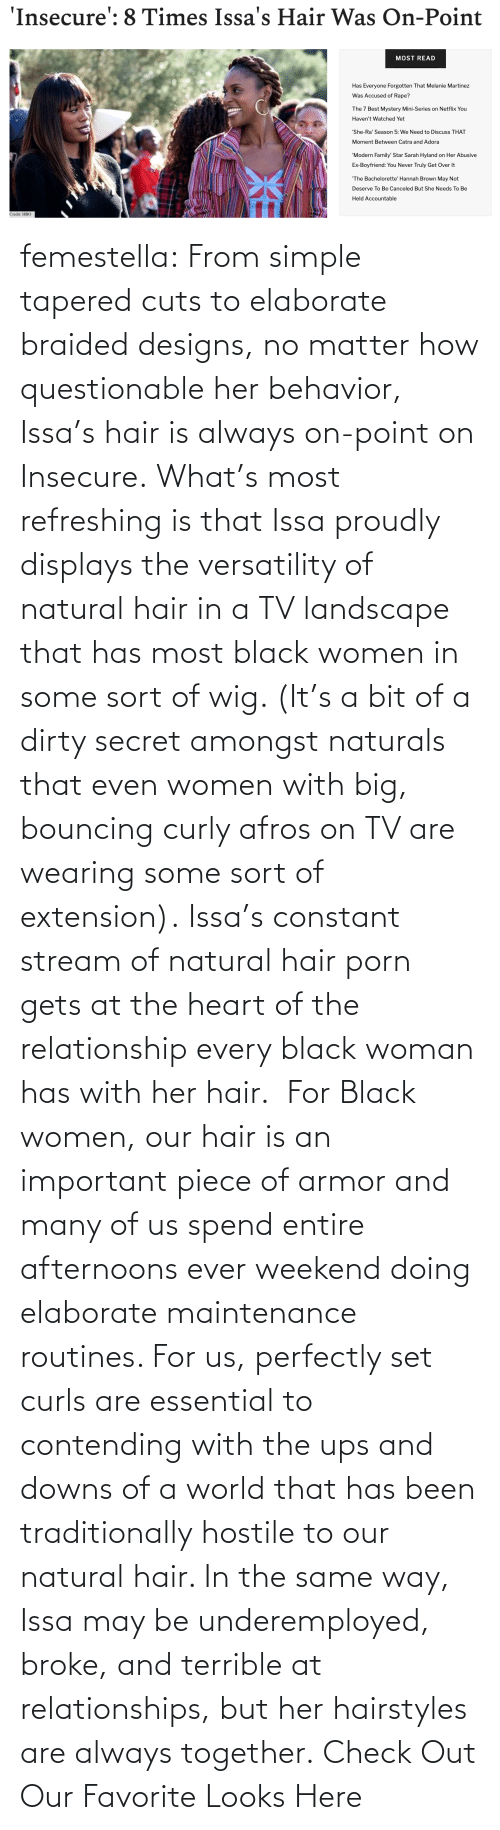 Relationships: femestella: From simple tapered cuts to elaborate braided designs, no matter how questionable her behavior, Issa's hair is always on-point on Insecure. What's most refreshing is that Issa proudly displays the versatility of natural hair in a TV landscape that has most black women in some sort of wig. (It's a bit of a dirty secret amongst naturals that even women with big, bouncing curly afros on TV are wearing some sort of extension). Issa's constant stream of natural hair porn gets at the heart of the relationship every black woman has with her hair. For Black women, our hair is an important piece of armor and many of us spend entire afternoons ever weekend doing elaborate maintenance routines. For us, perfectly set curls are essential to contending with the ups and downs of a world that has been traditionally hostile to our natural hair. In the same way, Issa may be underemployed, broke, and terrible at relationships, but her hairstyles are always together. Check Out Our Favorite Looks Here